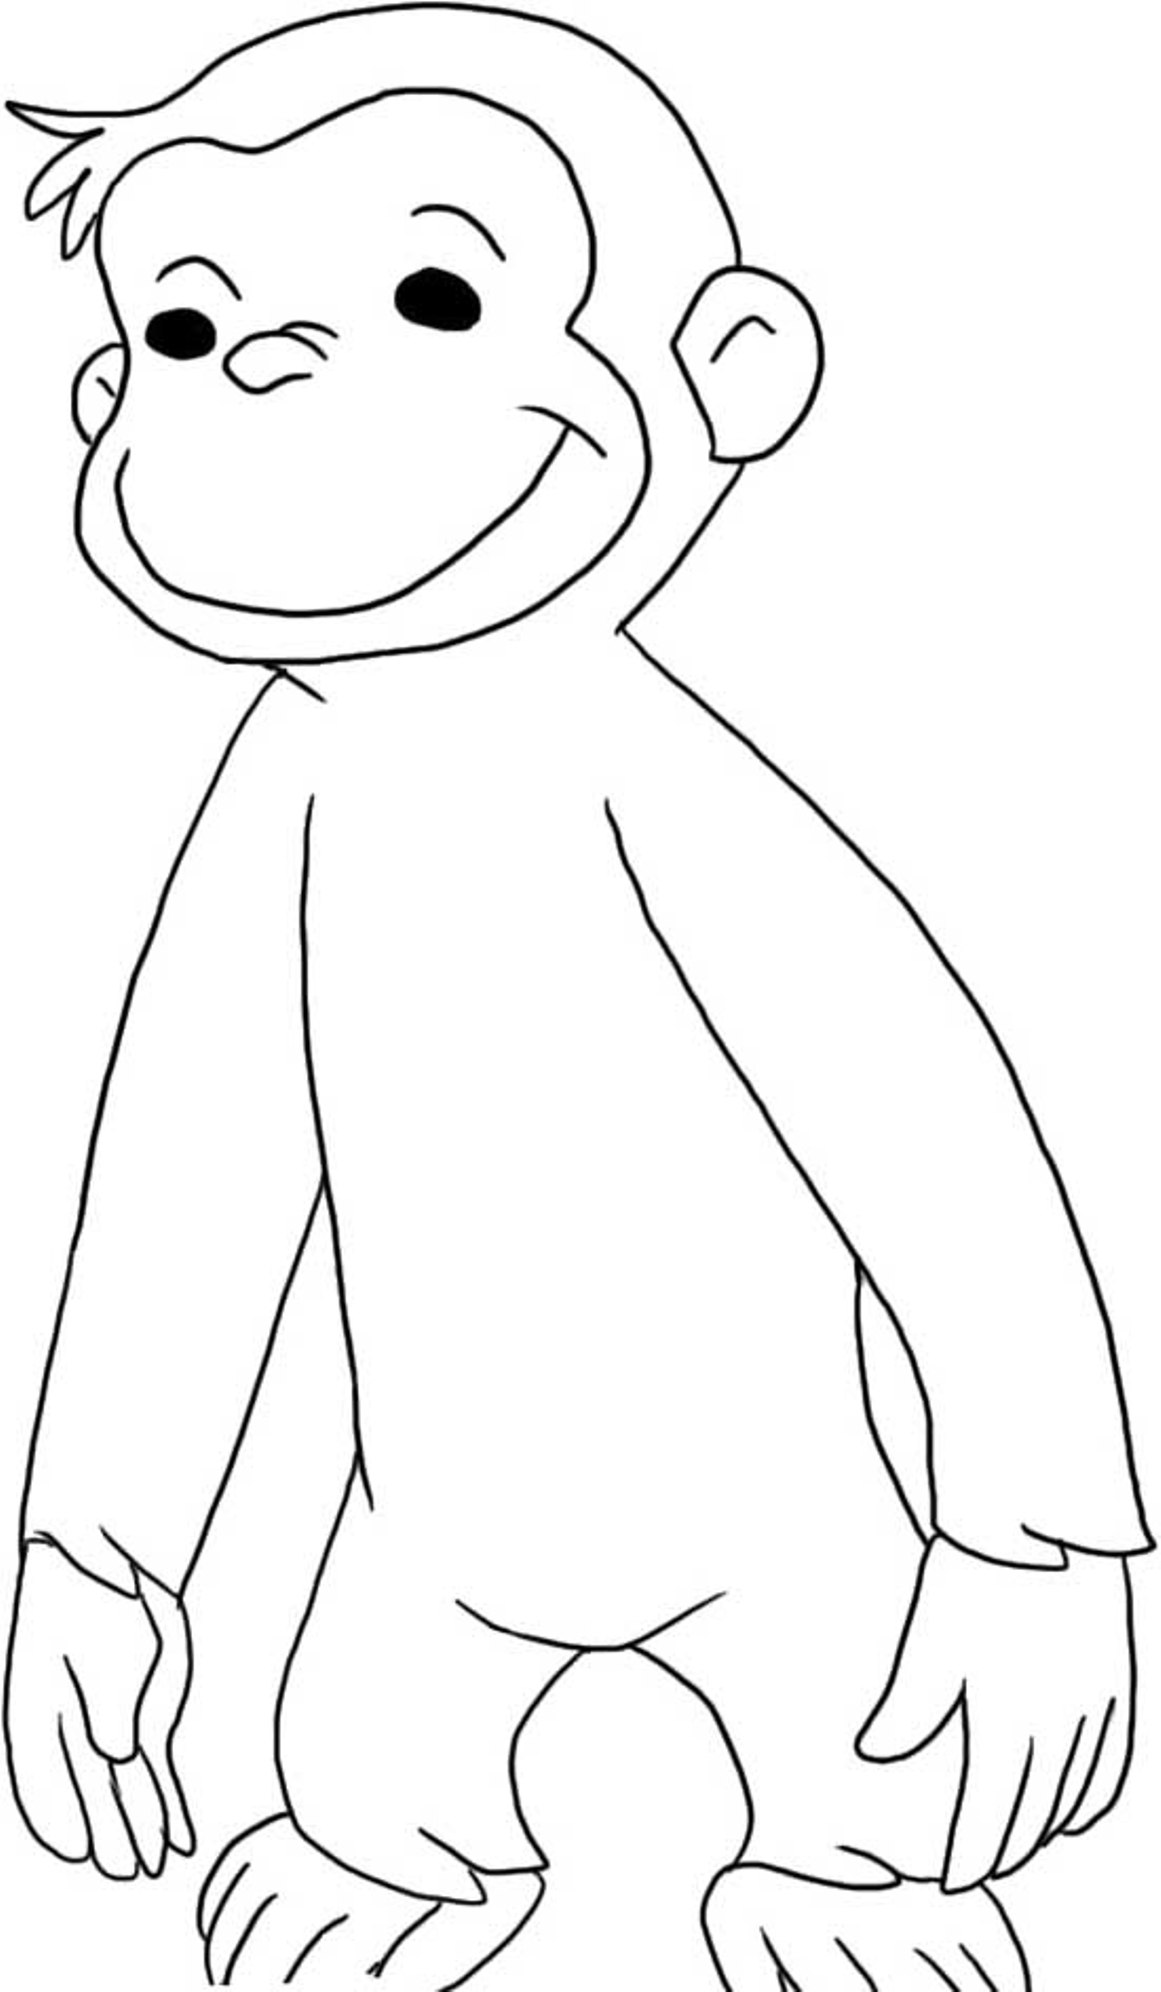 free printable curious george coloring pages curious george sitting coloring page free curious george curious printable coloring pages free george